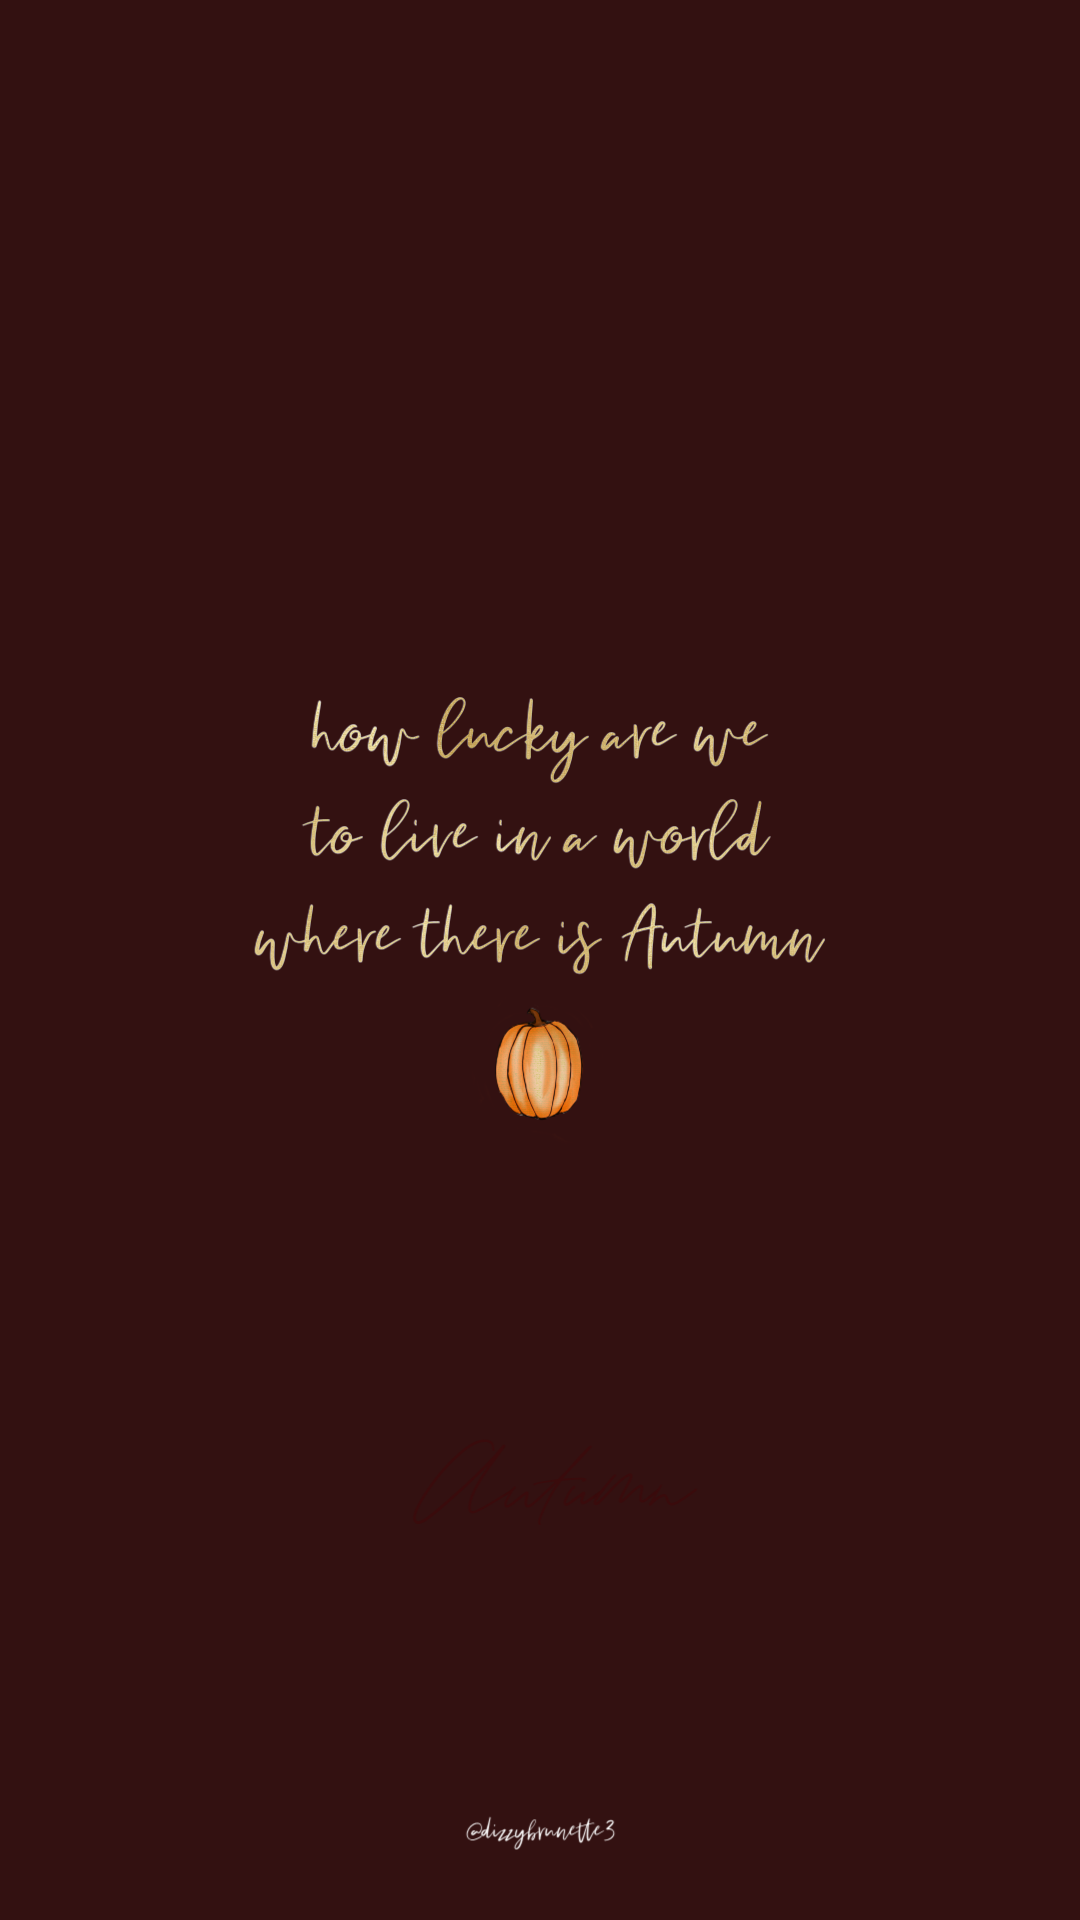 Free Phone Wallpapers : October Edition - Dizzybrunette #octoberwallpaperiphone